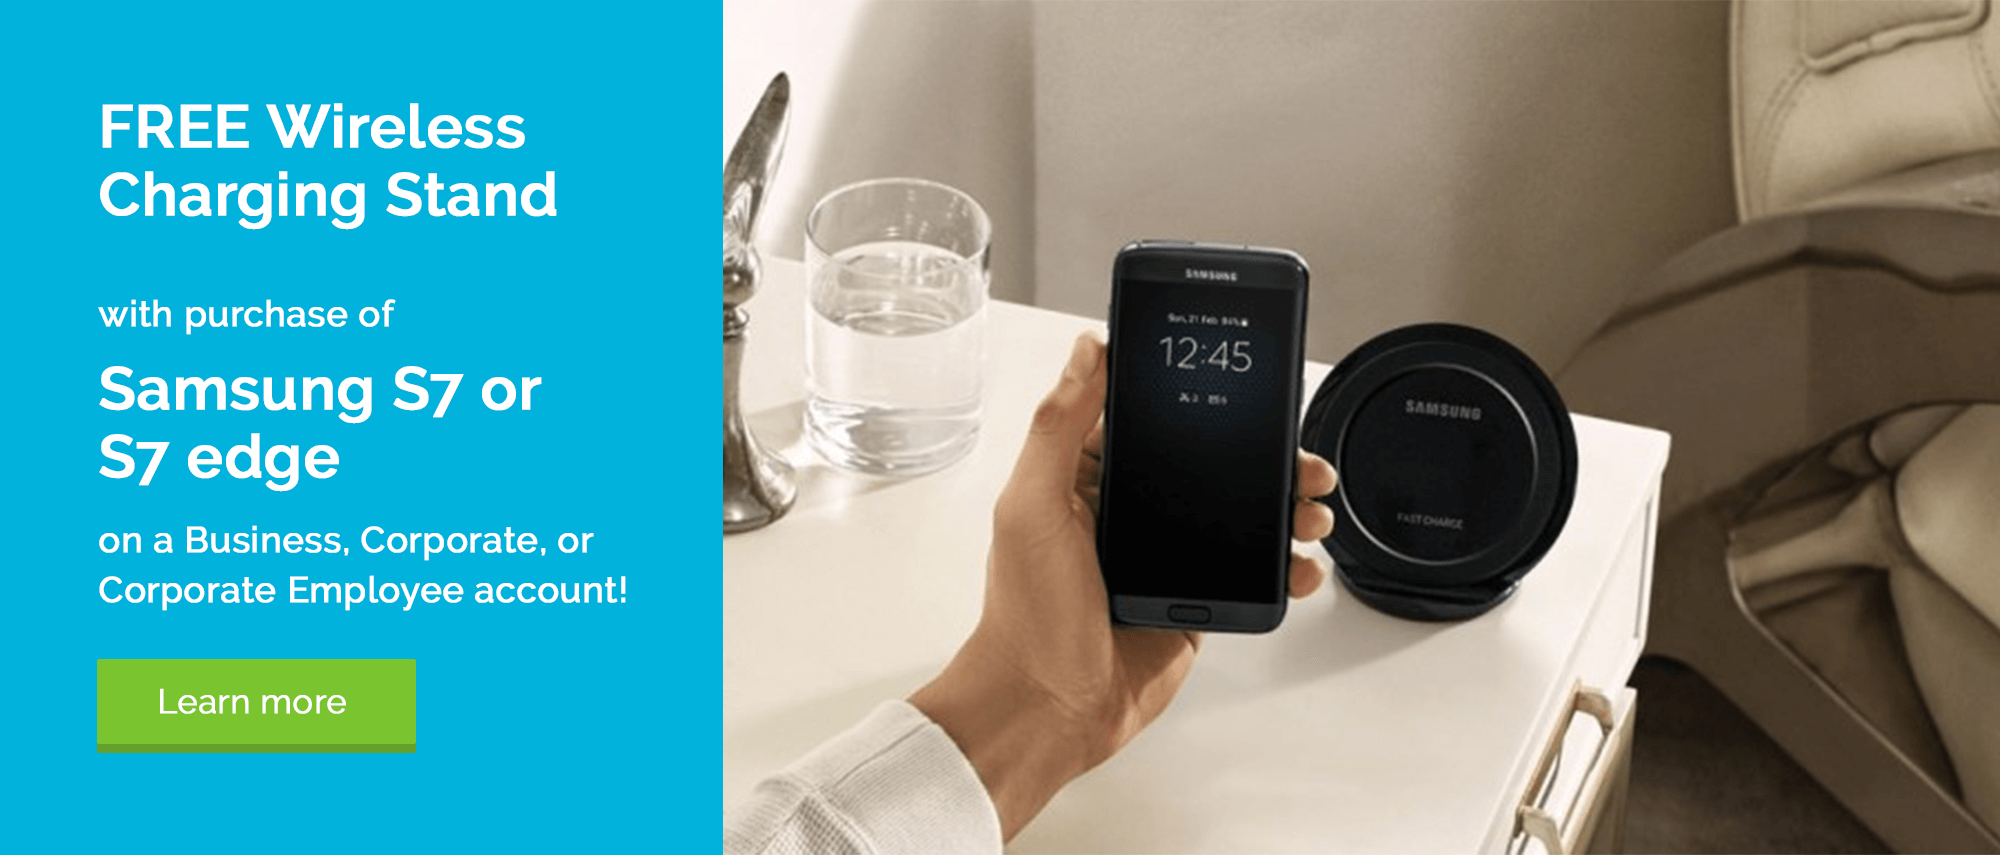 Free Wireless Charging Pad with Galaxy S7 or S7 edge